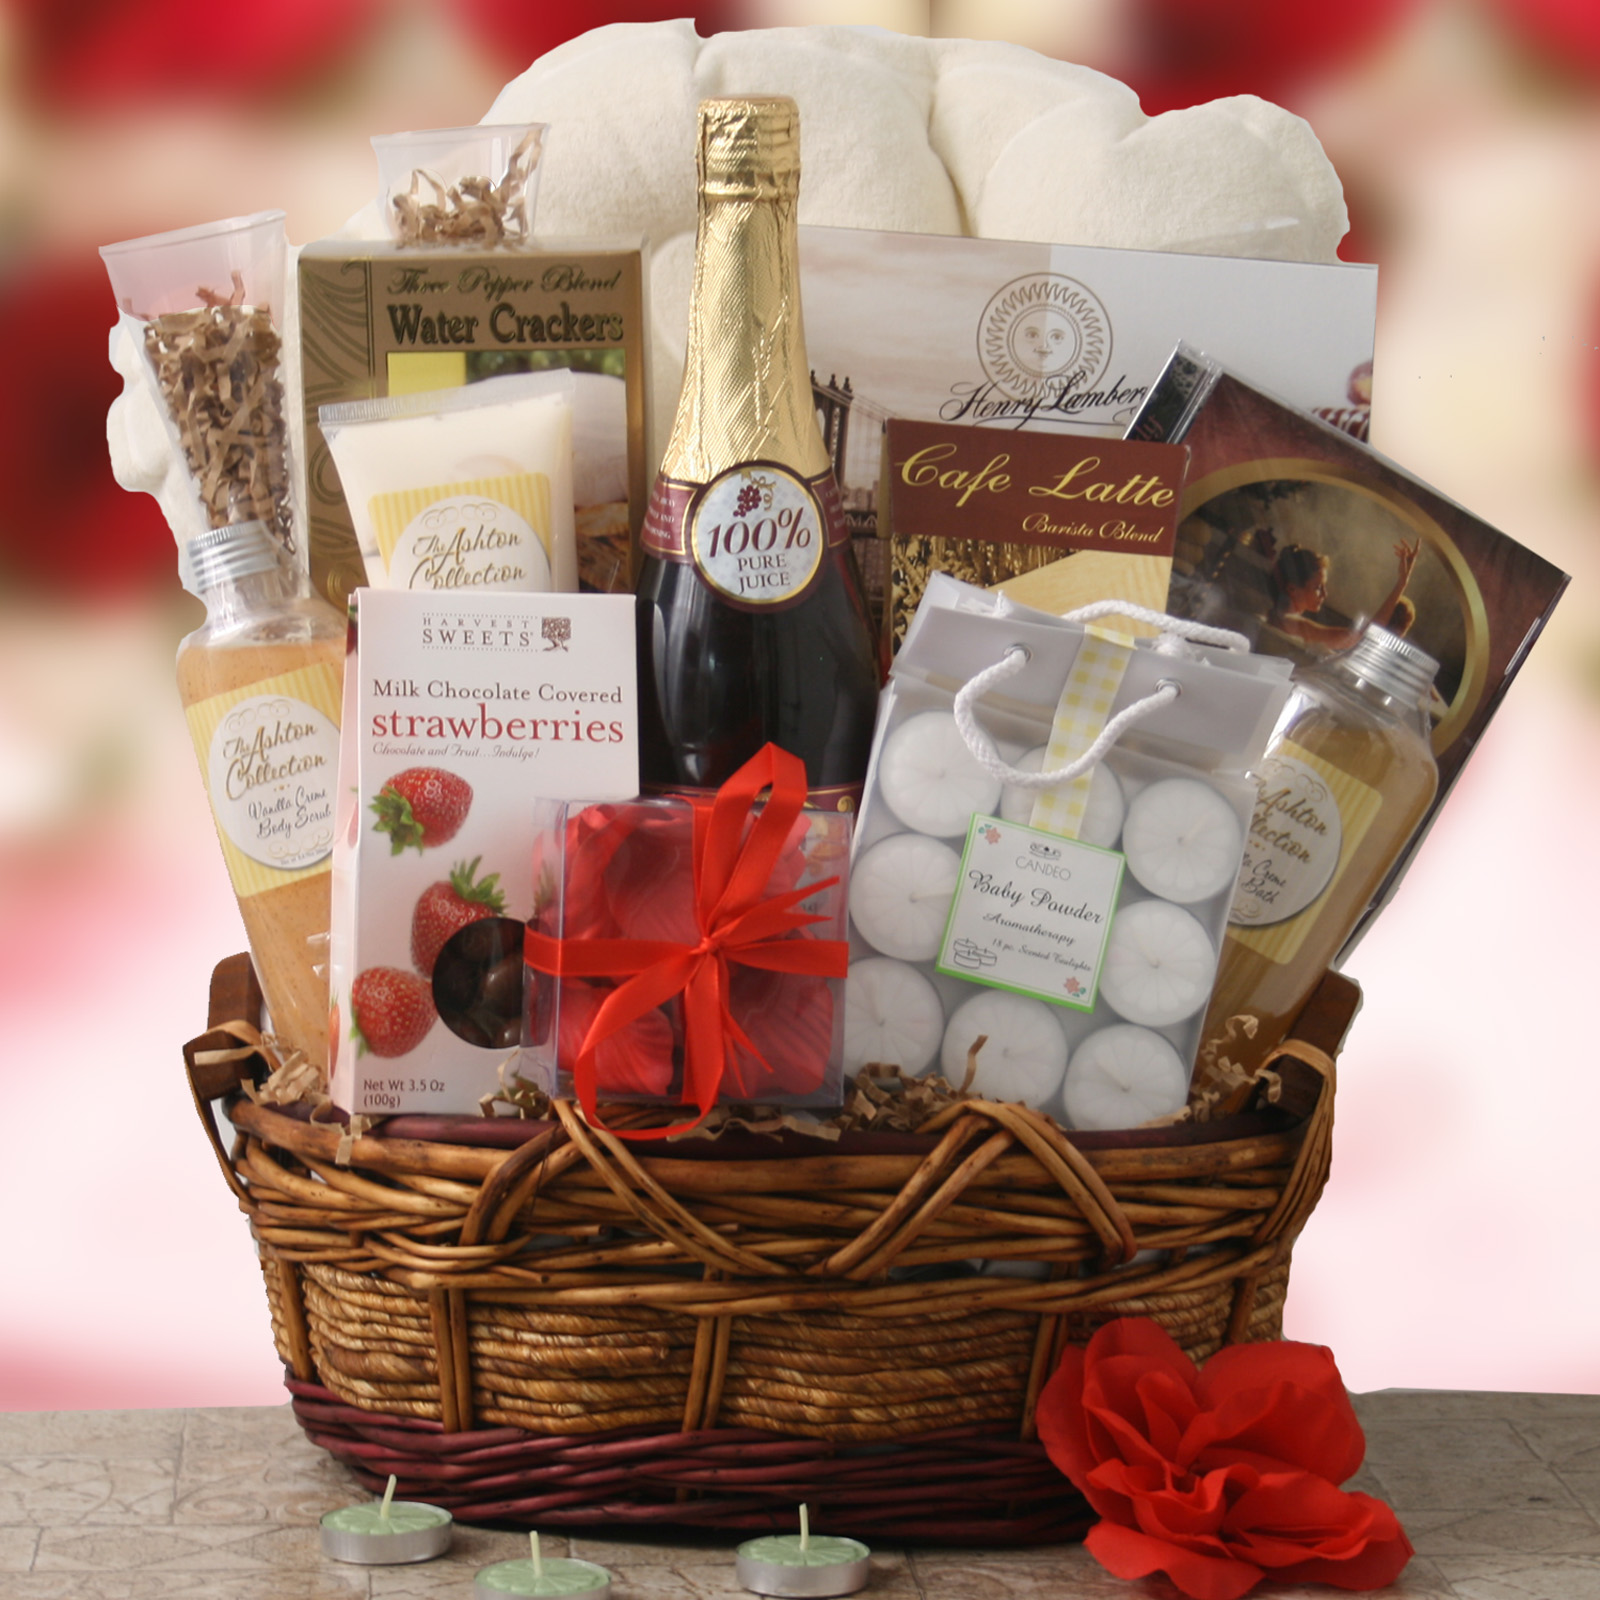 Ideas For Wedding Gift Hamper : ... Sympathy, New Baby & Birthday Gift Baskets for Sale at GiftBaskets.com